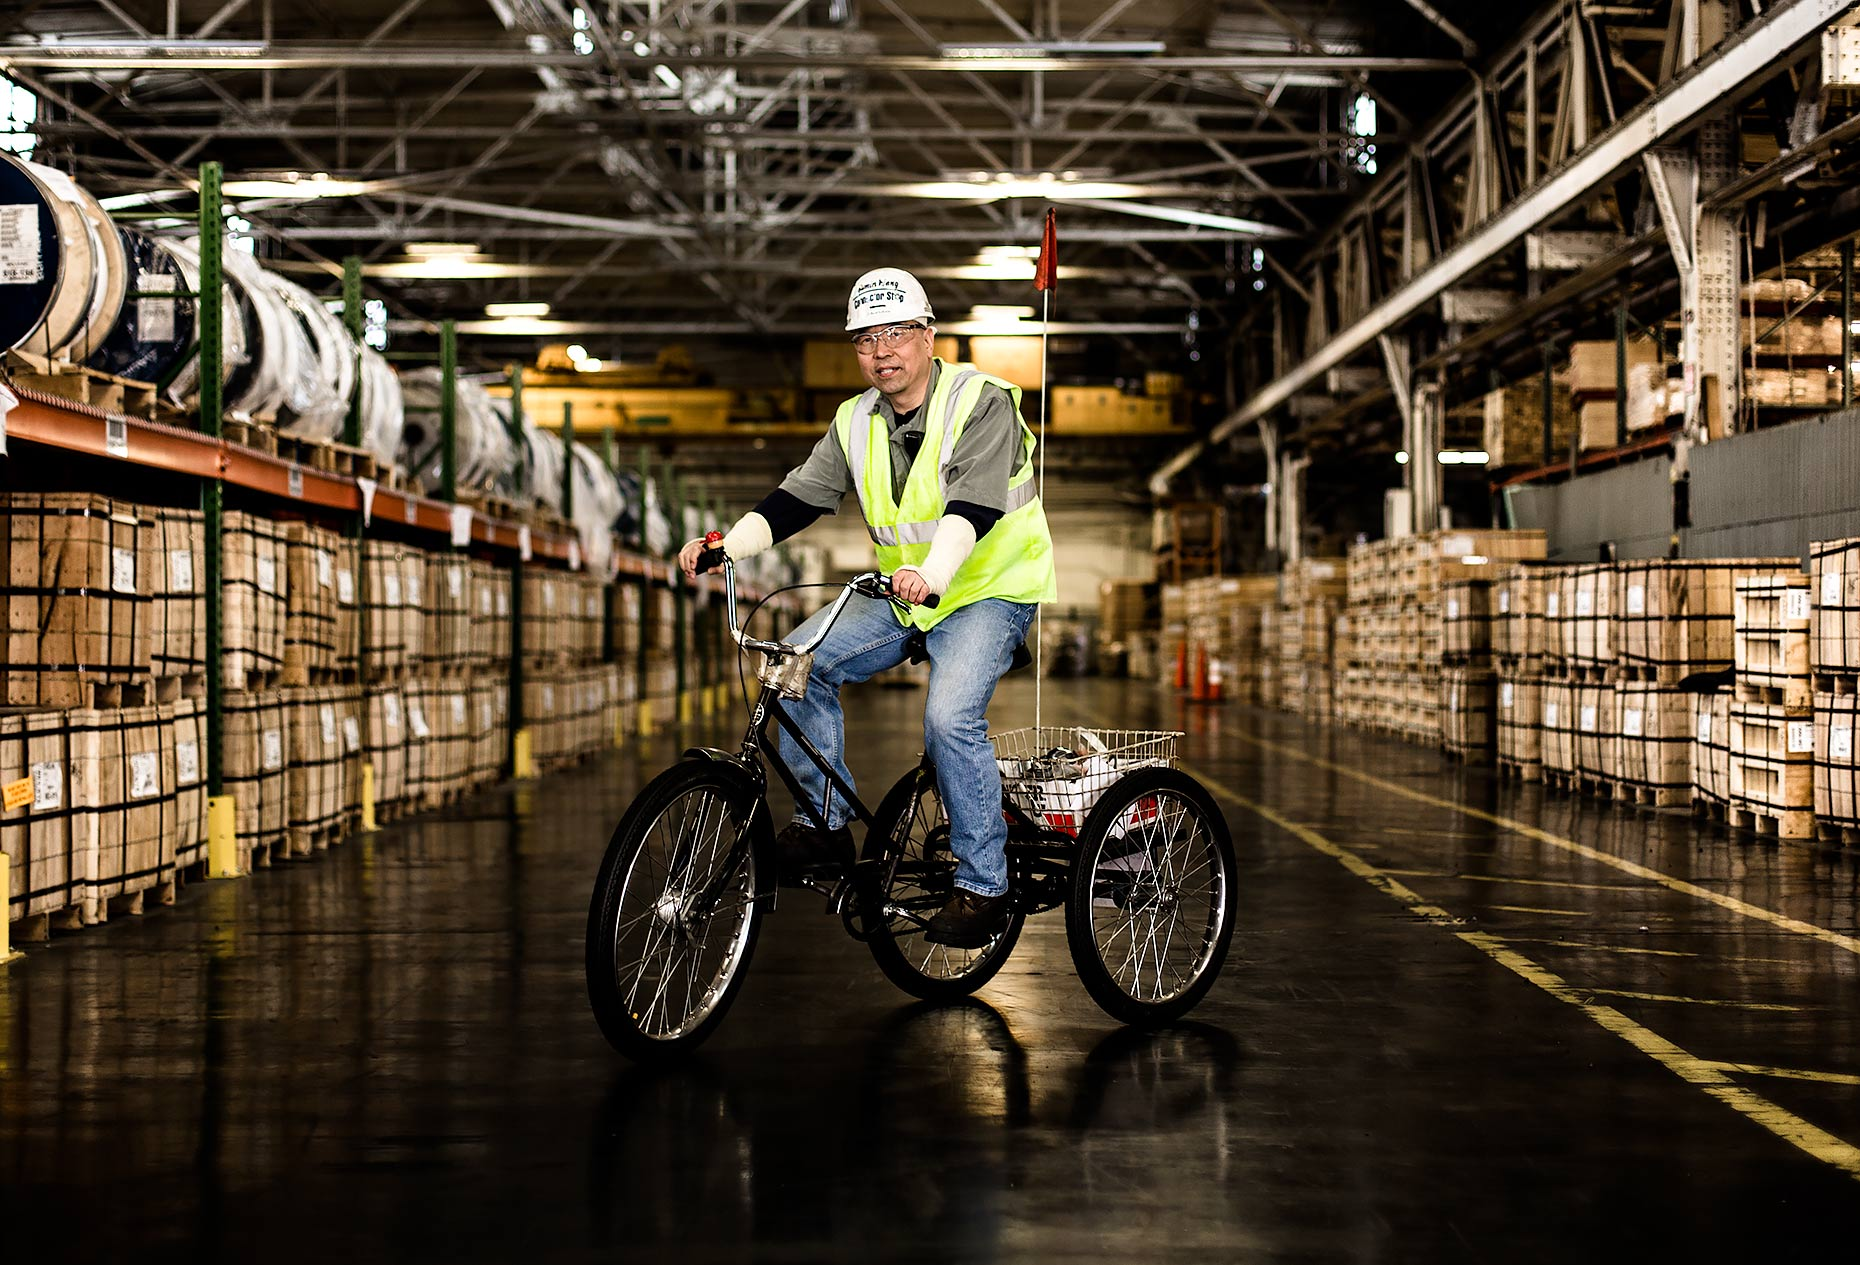 Warehouse facility | Scott Gable is an advertising and editorial photographer providing photography and video to corporate, industrial, healthcare and bio-science clients worldwide.